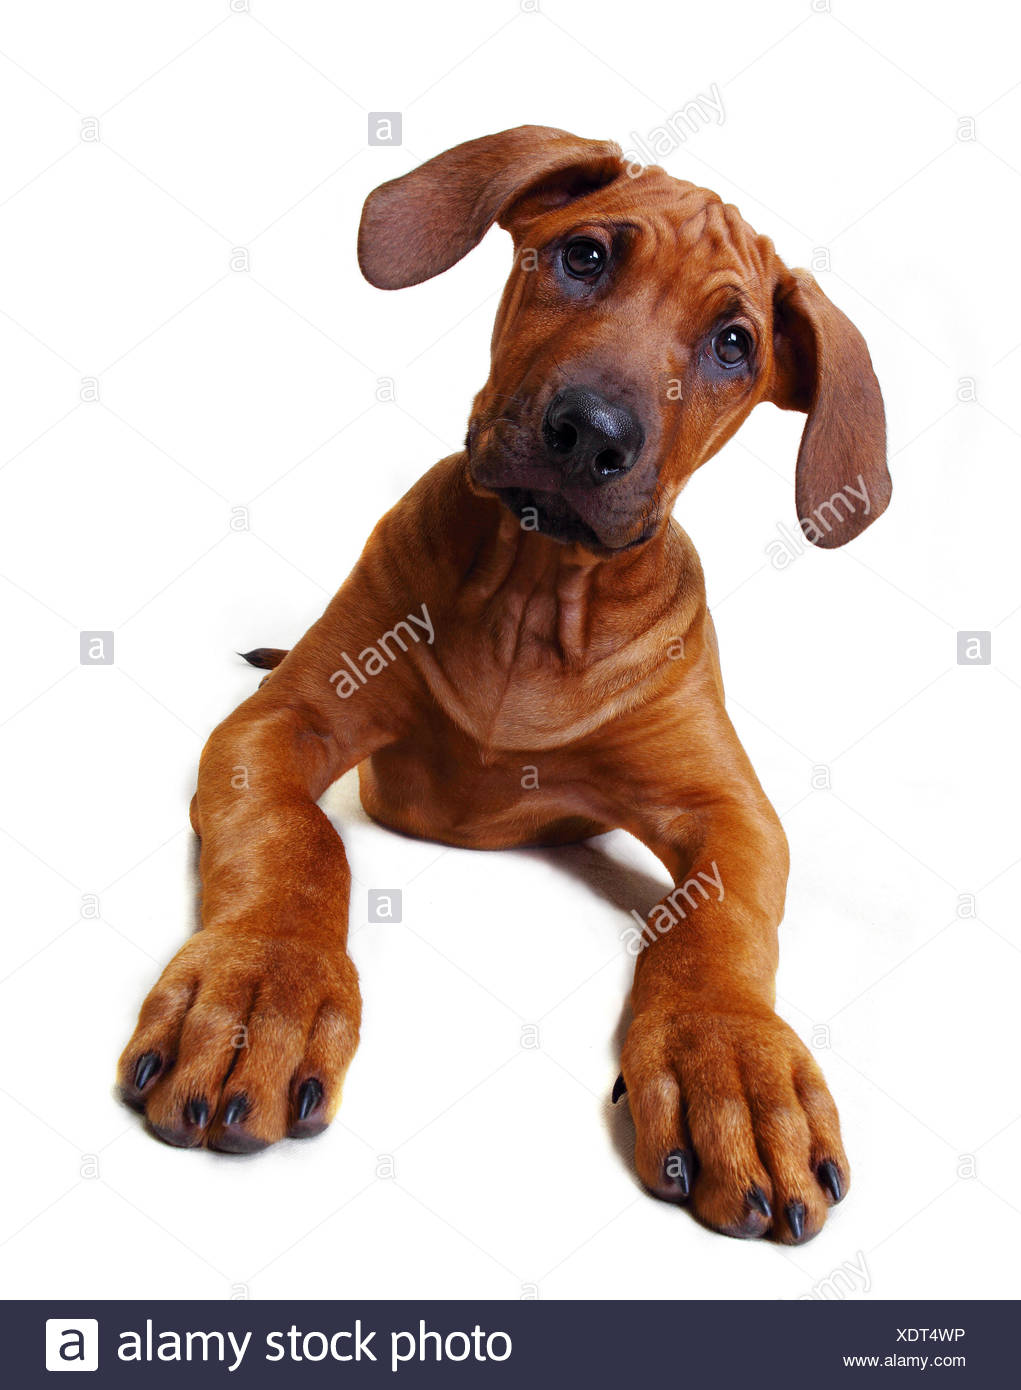 A Rhodesian Ridgeback puppy sitting down Stock Photo